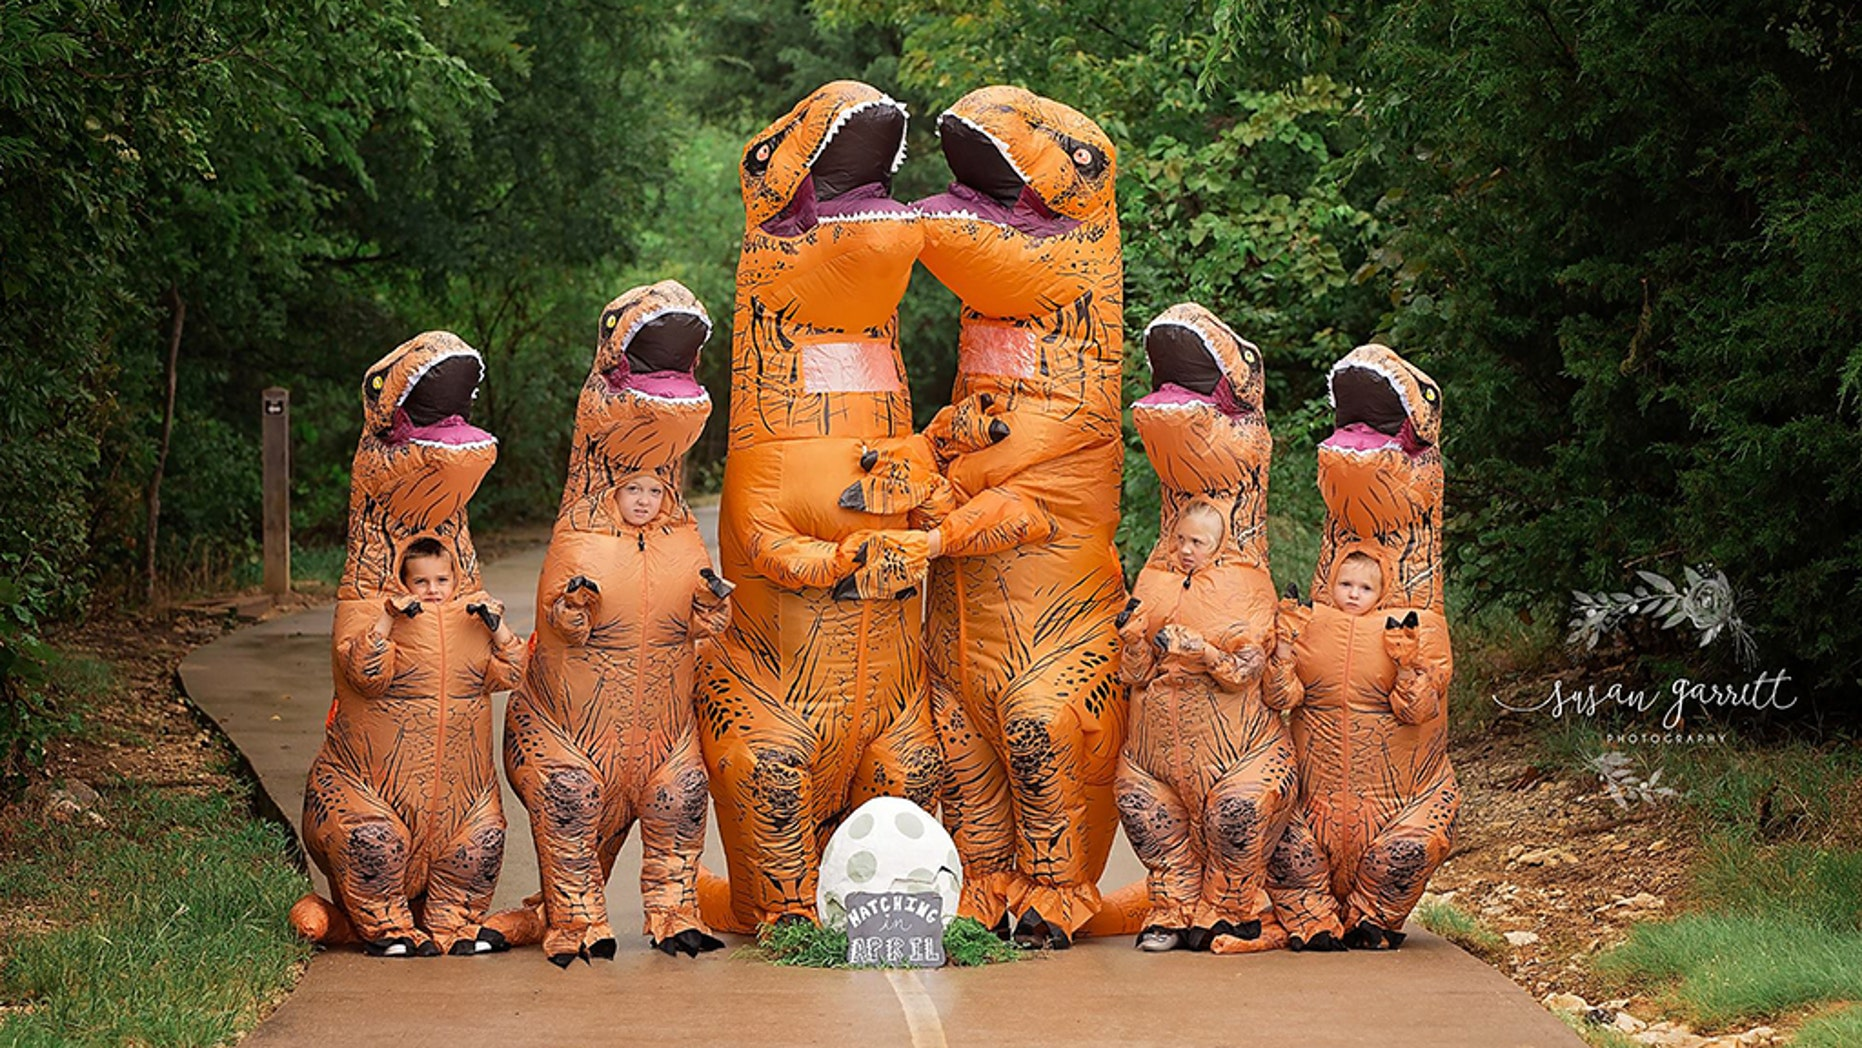 In the hilarious pregnancy announcement, Nicole and Daniel Berkley of Aubrey dressed up along with their kids - Myleigh, 10, Montana, 6, Lane, 5 and Hannah, 4 – in matching oversized, prehistoric reptile outfits for a memorable photoshoot.